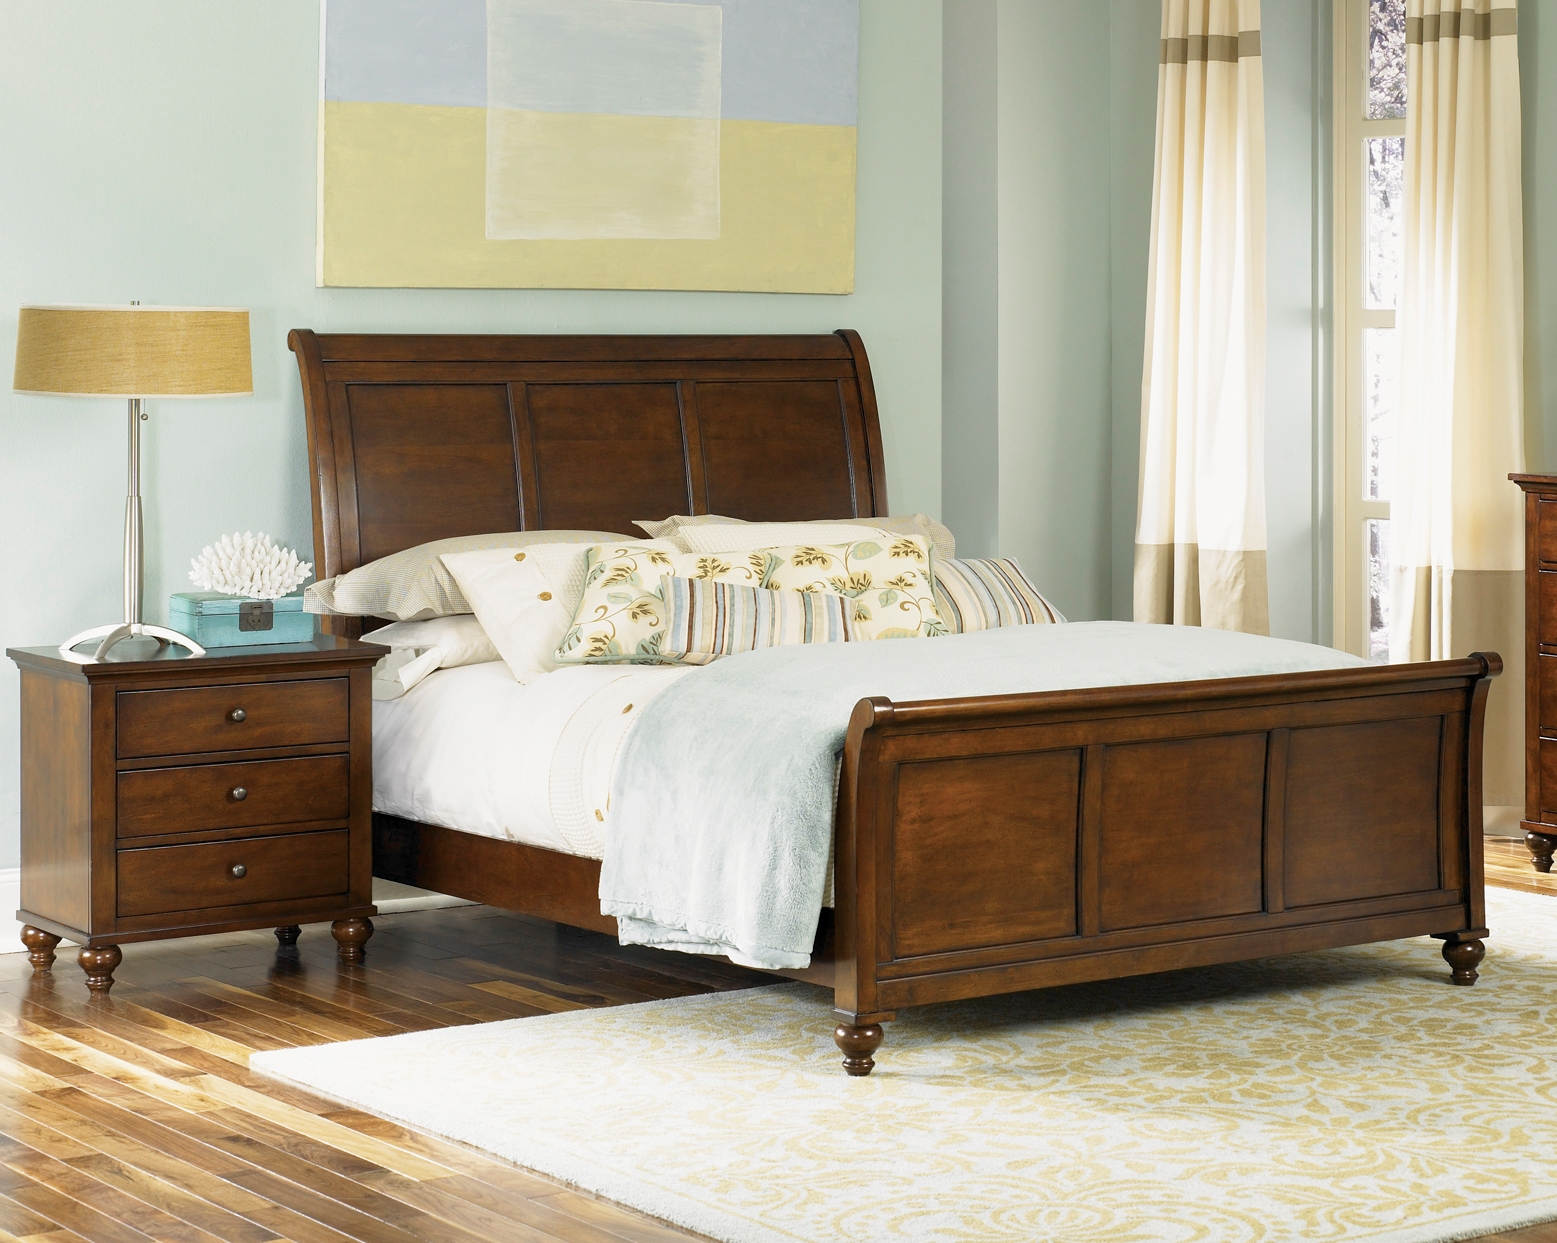 Liberty Hamilton Cinnamon 2pc Bedroom Set With Queen Sleigh Bed